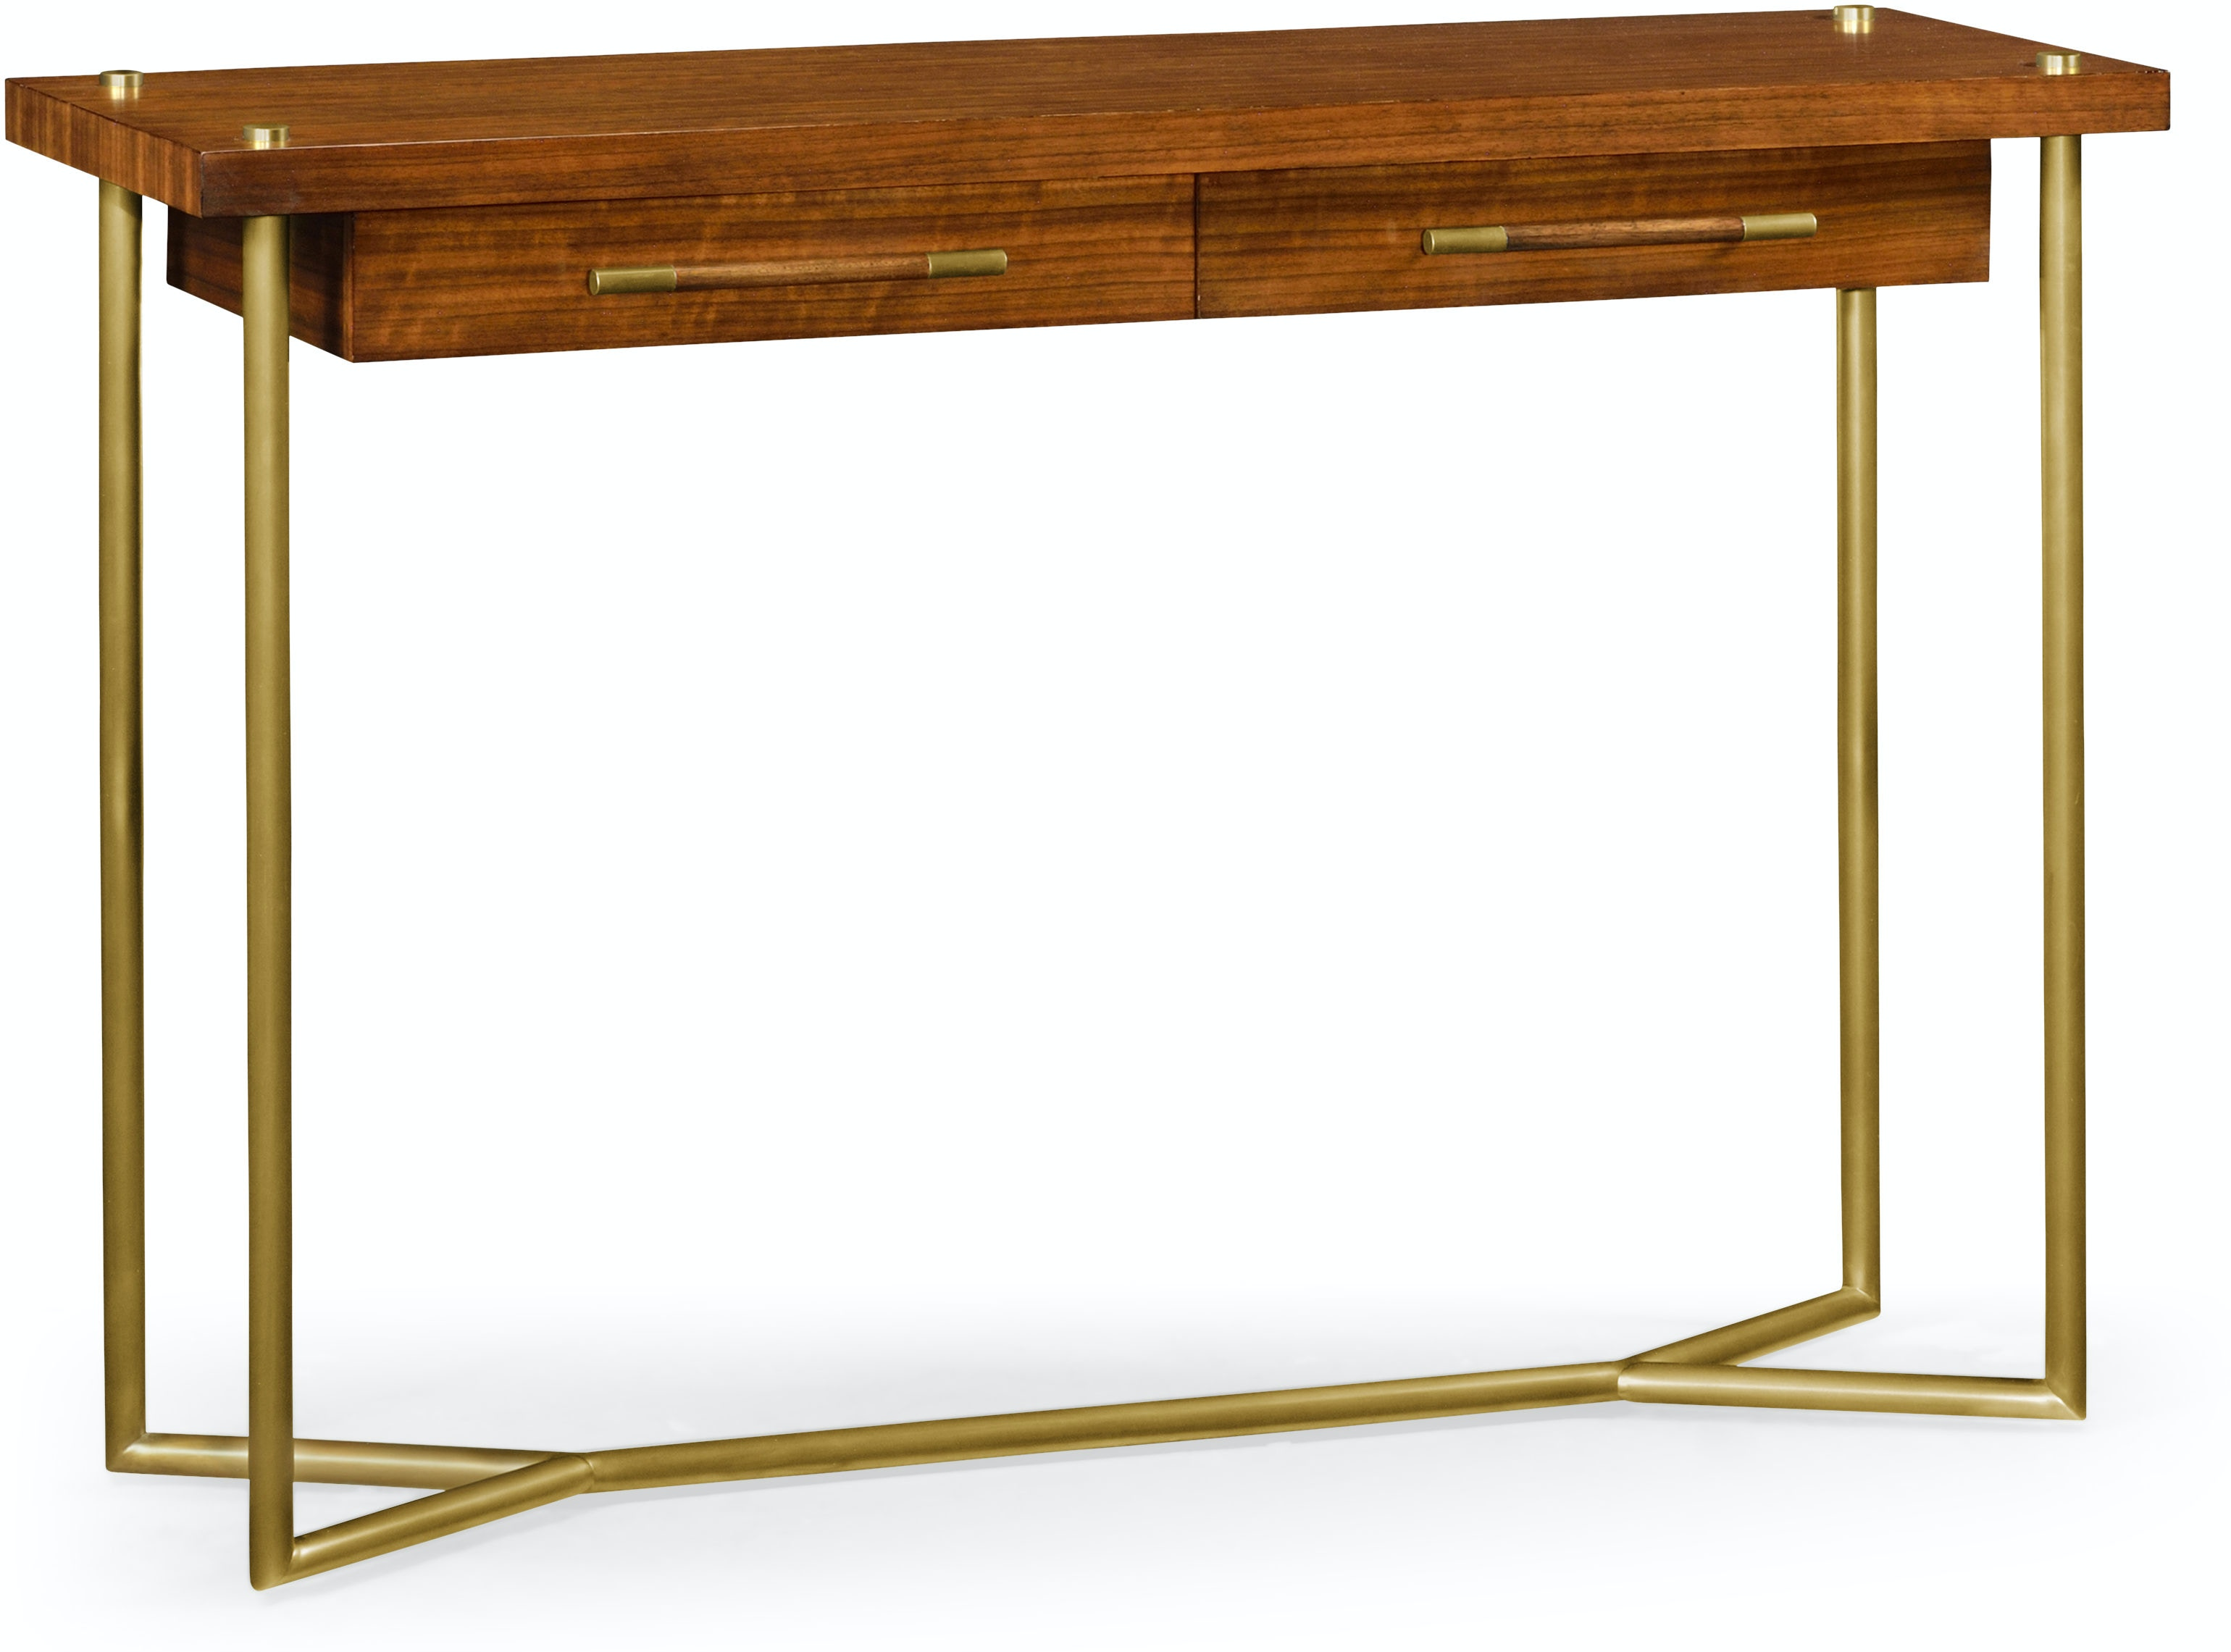 Jonathan Charles Living Room Mid-Century Console Table QJ495412DLF Walter  E. Smithe Furniture + Design